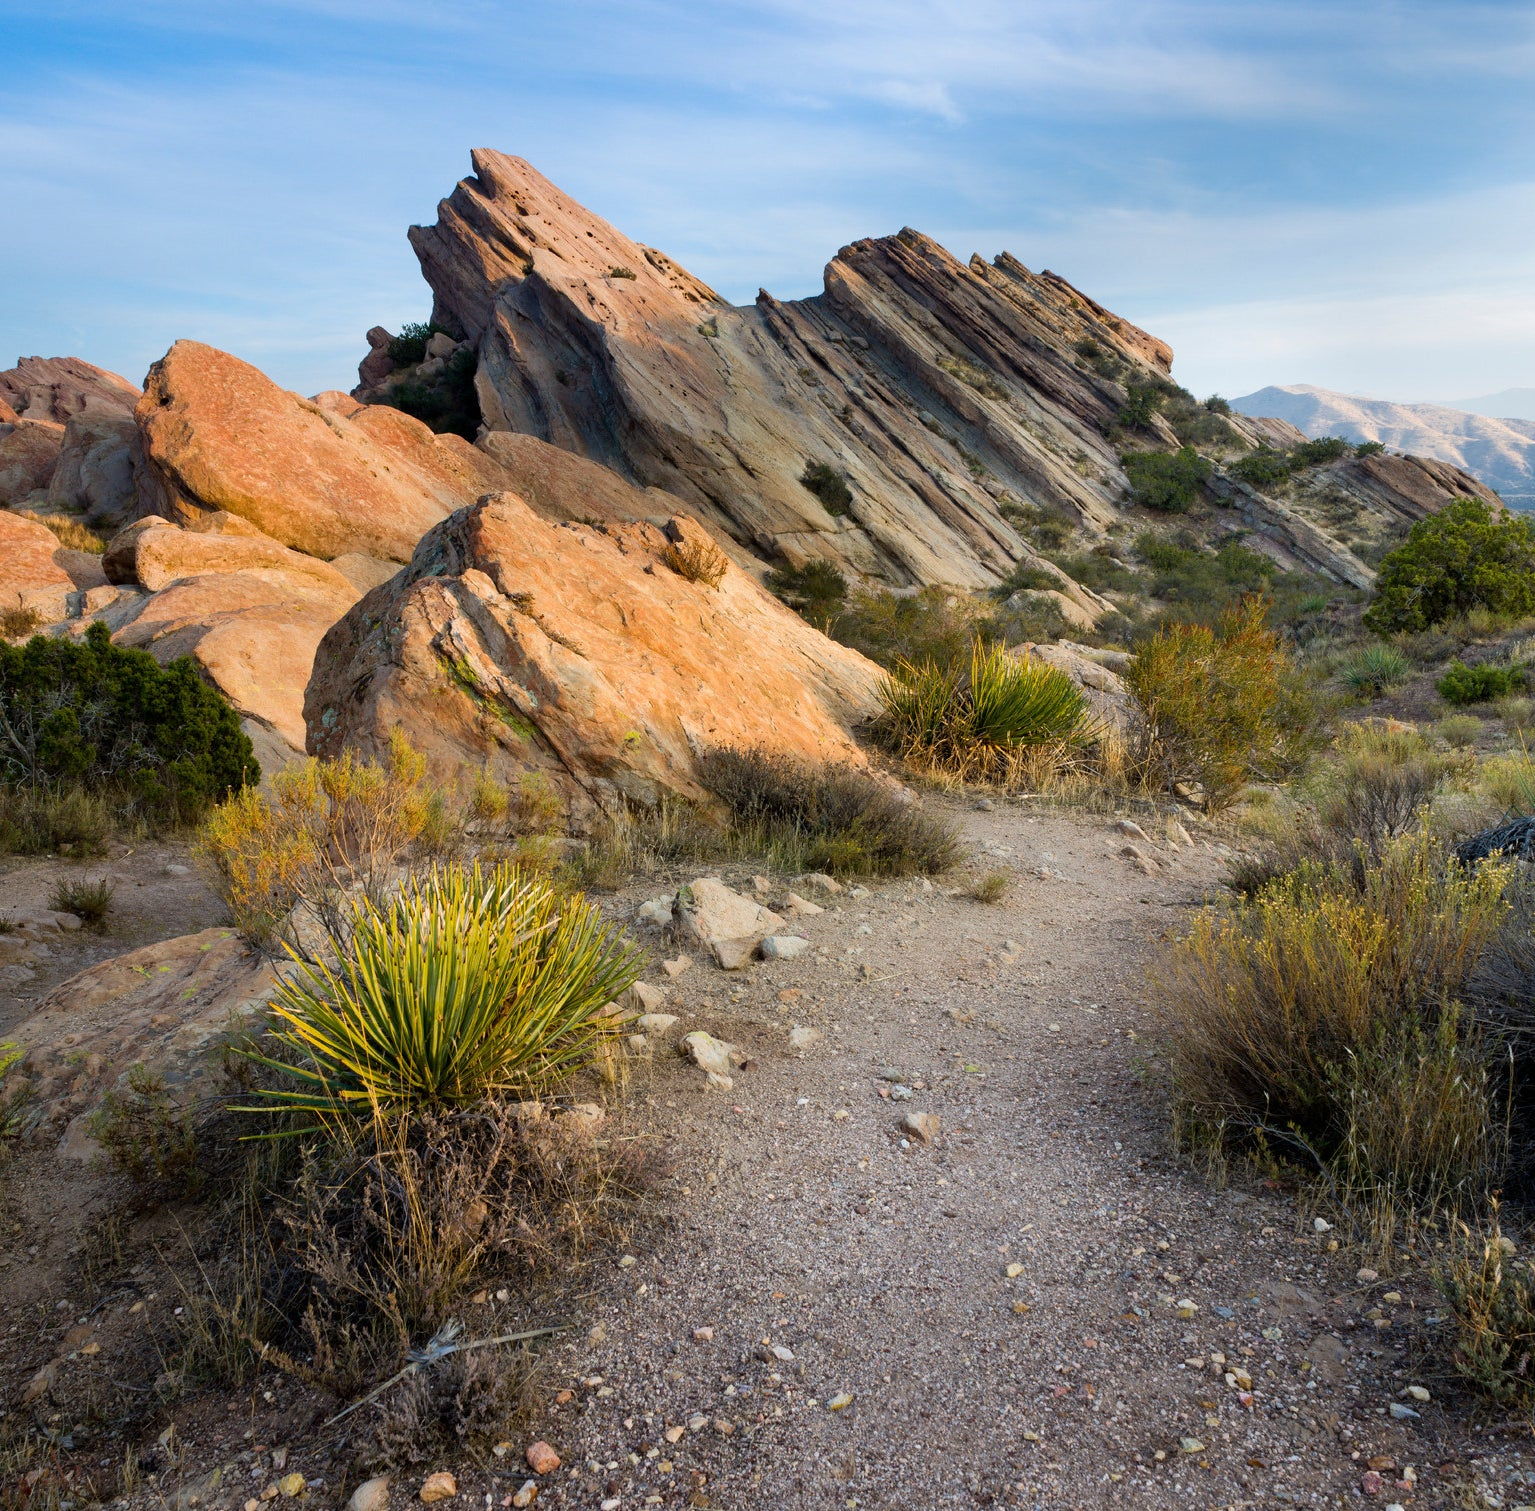 hiking trail leads to a unique jagged rock formation with short spiky shrubs at the base